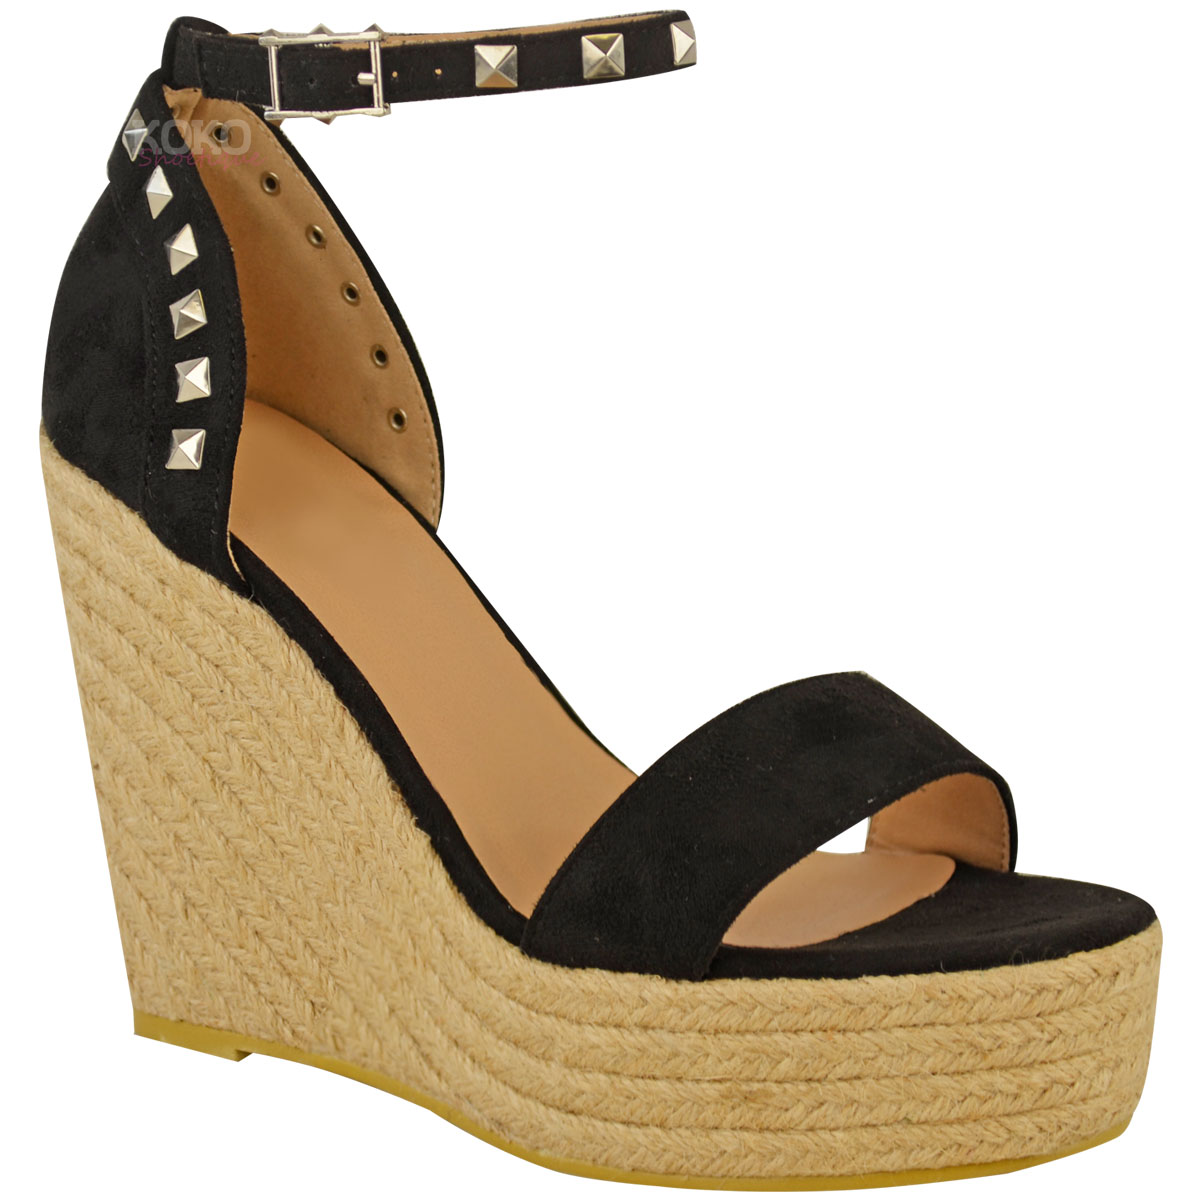 Details about Womens Ladies Studded Esapdrille Wedges High Heel Sandals Summer Platforms Size